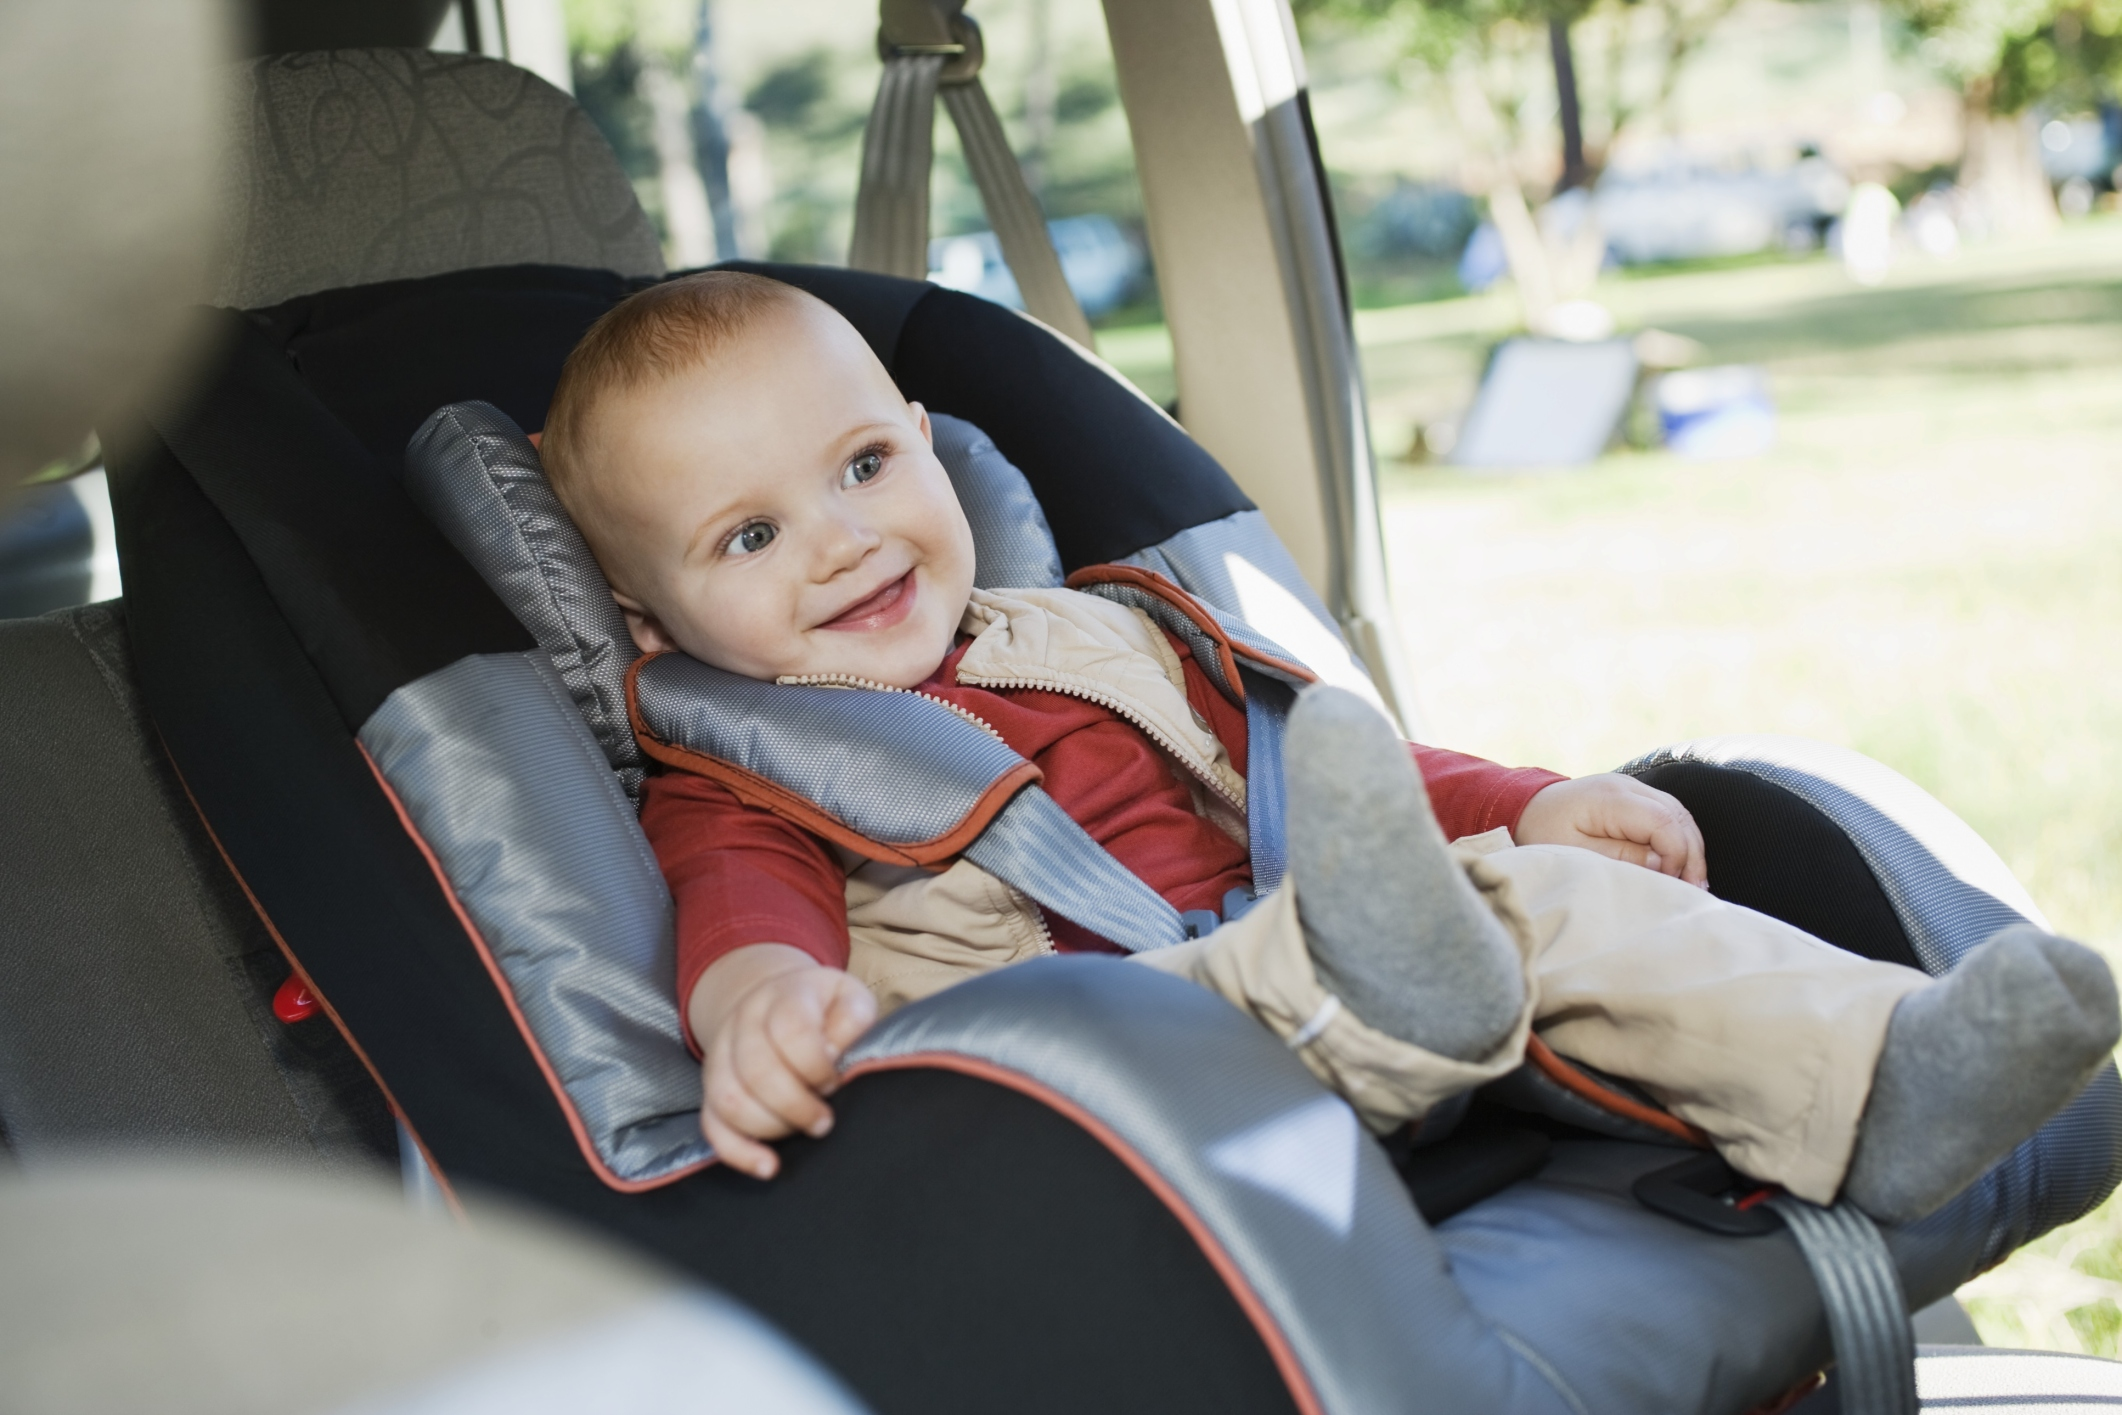 Keeping Kids Safe Car Seat Safety And More Childcare Physicians